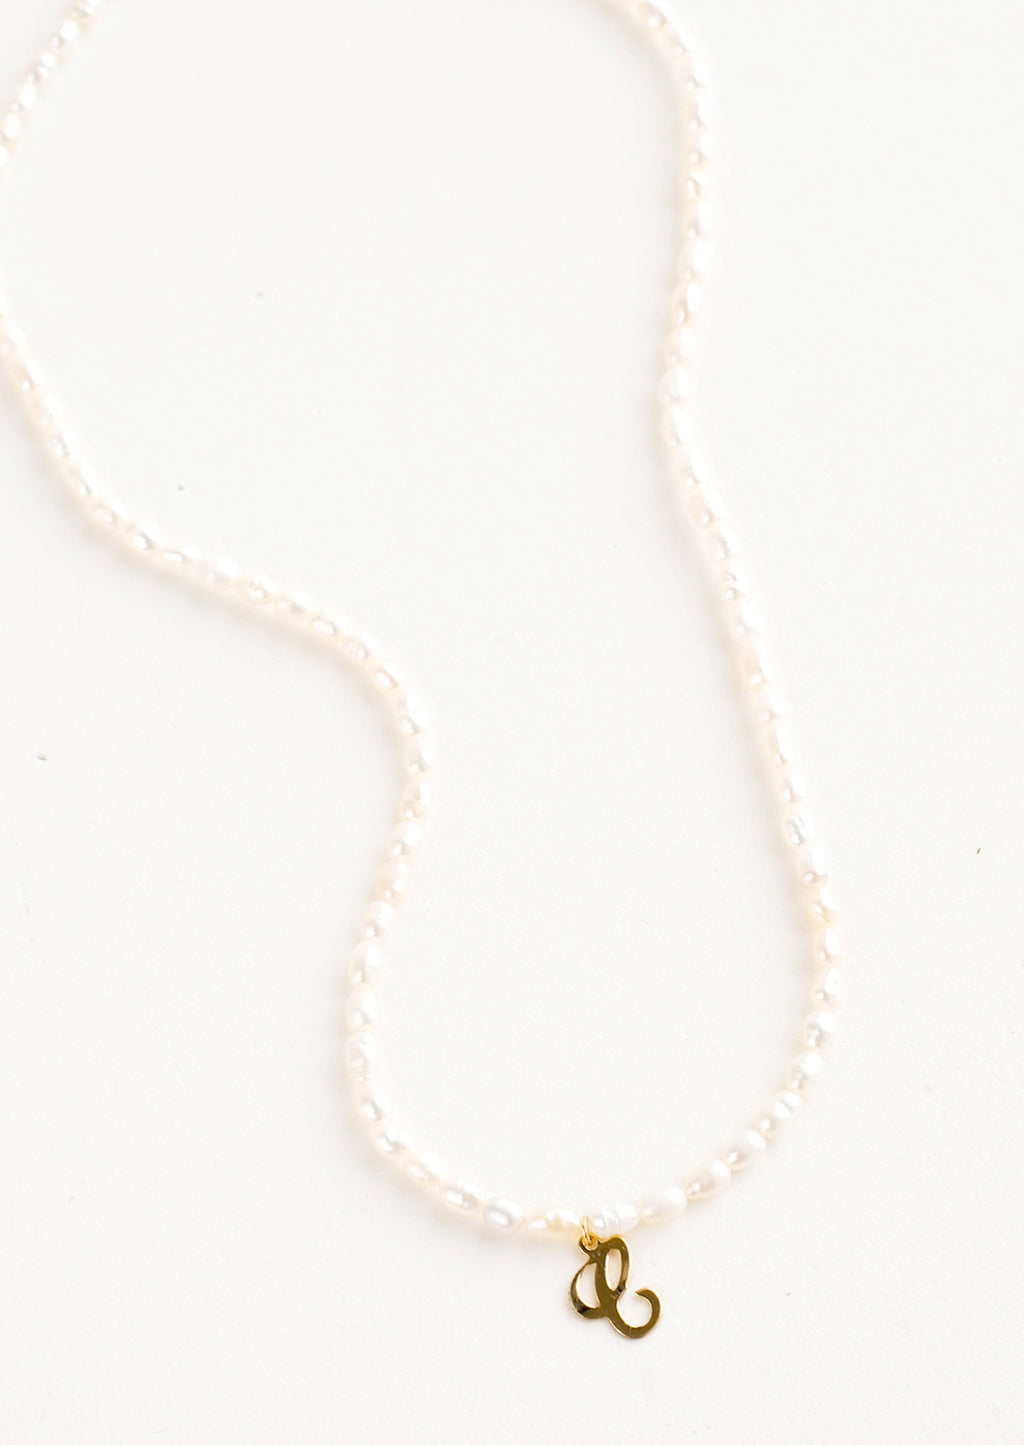 C: Quincy Pearl Initial Necklace